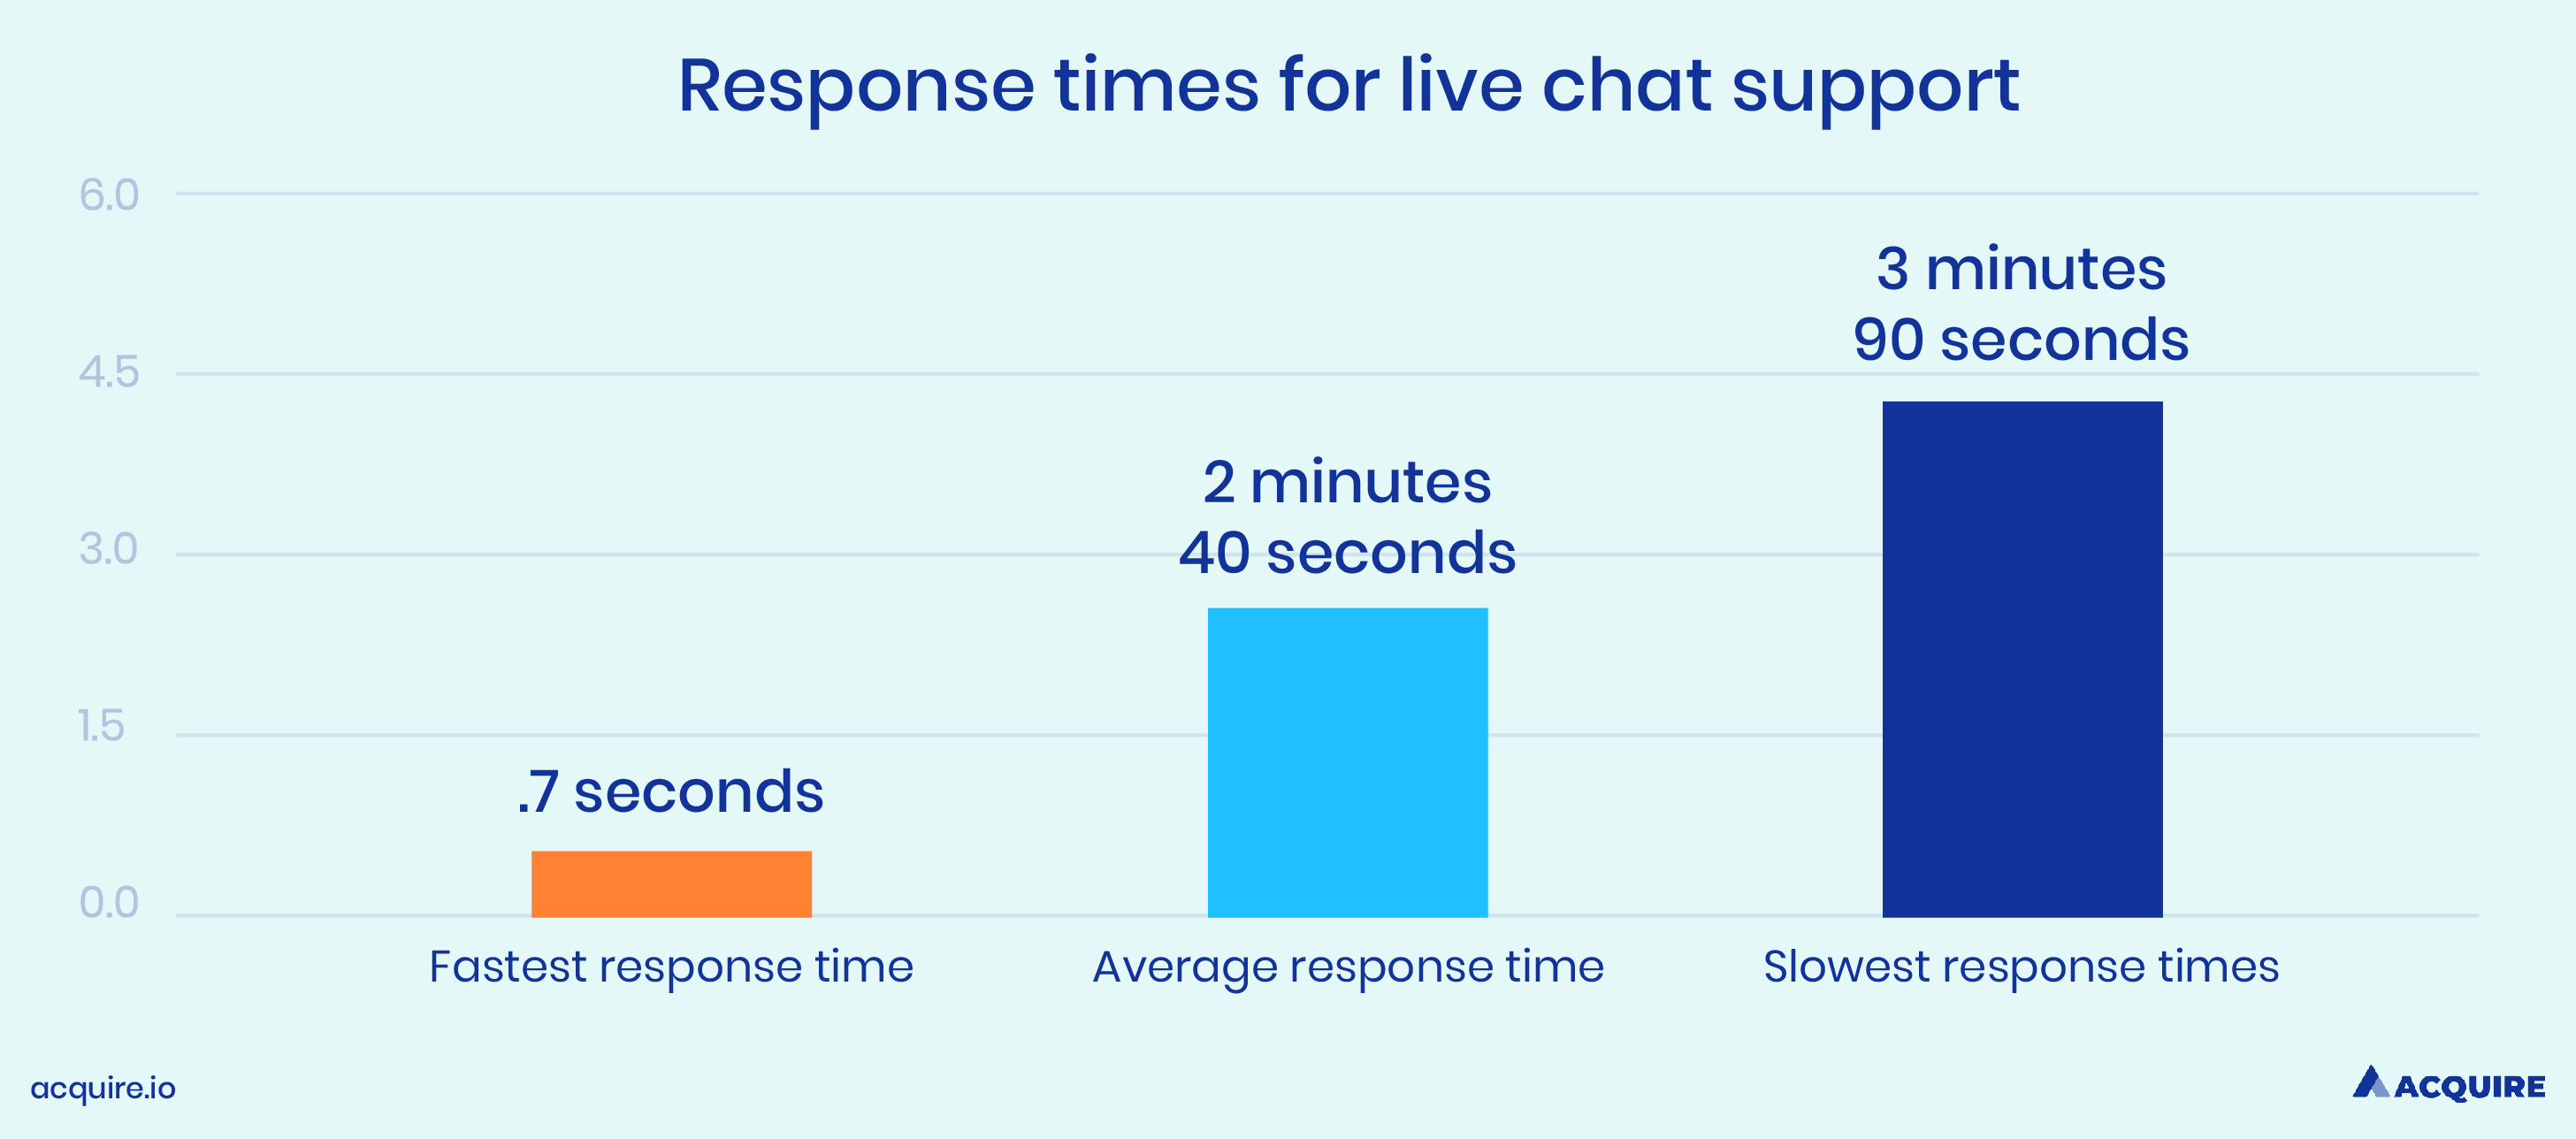 Levels of response times for live chat support